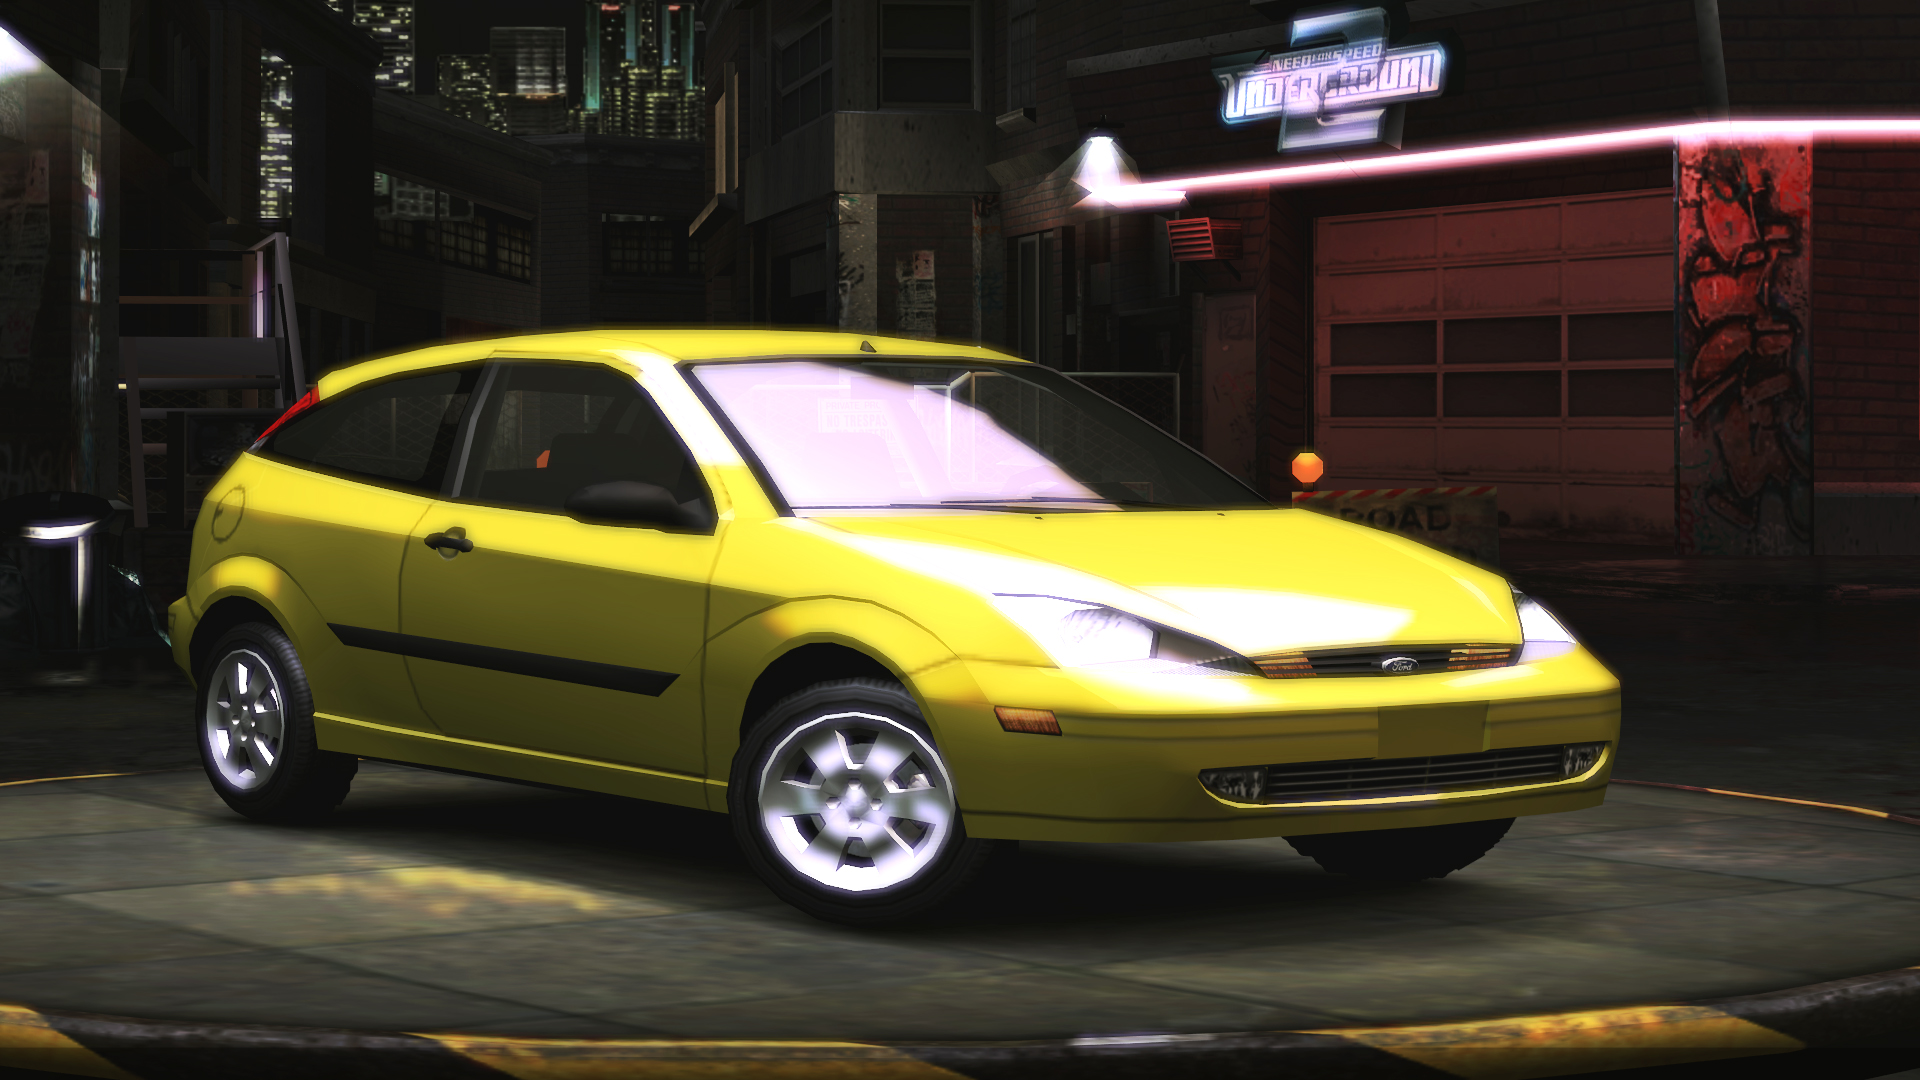 Ford Focus Zx3 >> Ford Focus Zx3 Gen 1 Need For Speed Wiki Fandom Powered By Wikia